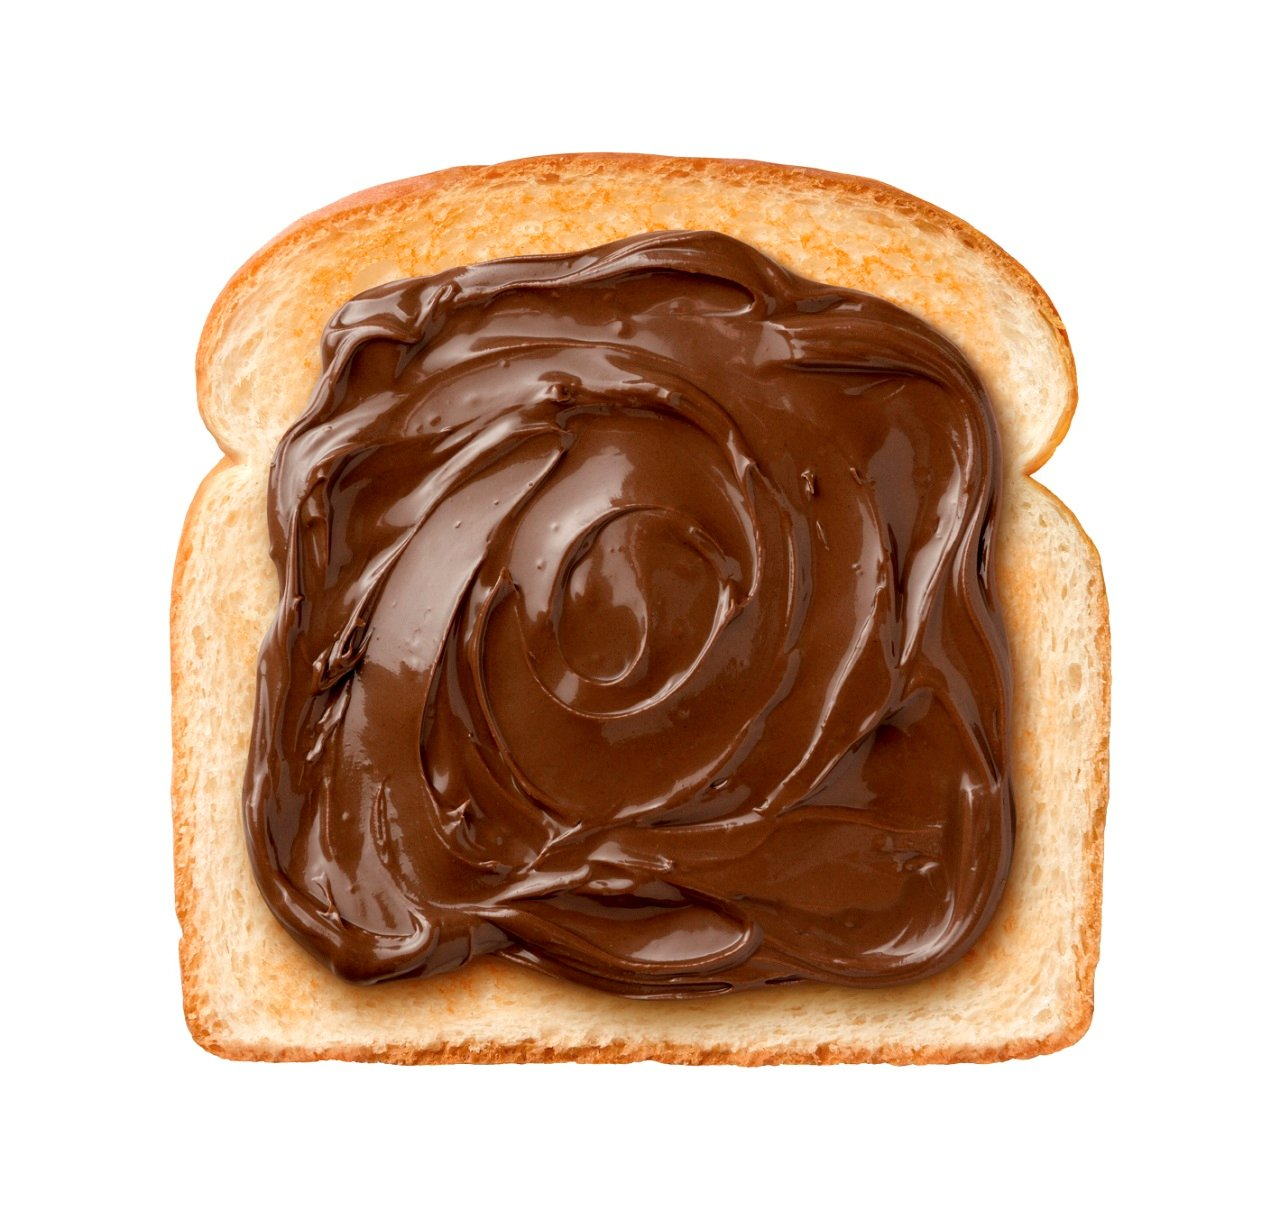 chocolate, spread, toast, crust, swirl, breakfast, bread, brown, nutella, sweet, snack, food, tasty, slice, dessert, creamy, calories, hazelnut, sandwich, delicious, cocoa, nougat, nutrition, eat, isolated, isolated on white, closeup, object, nobody, white background, cut out, studio shot, single object, ingredient, portion,